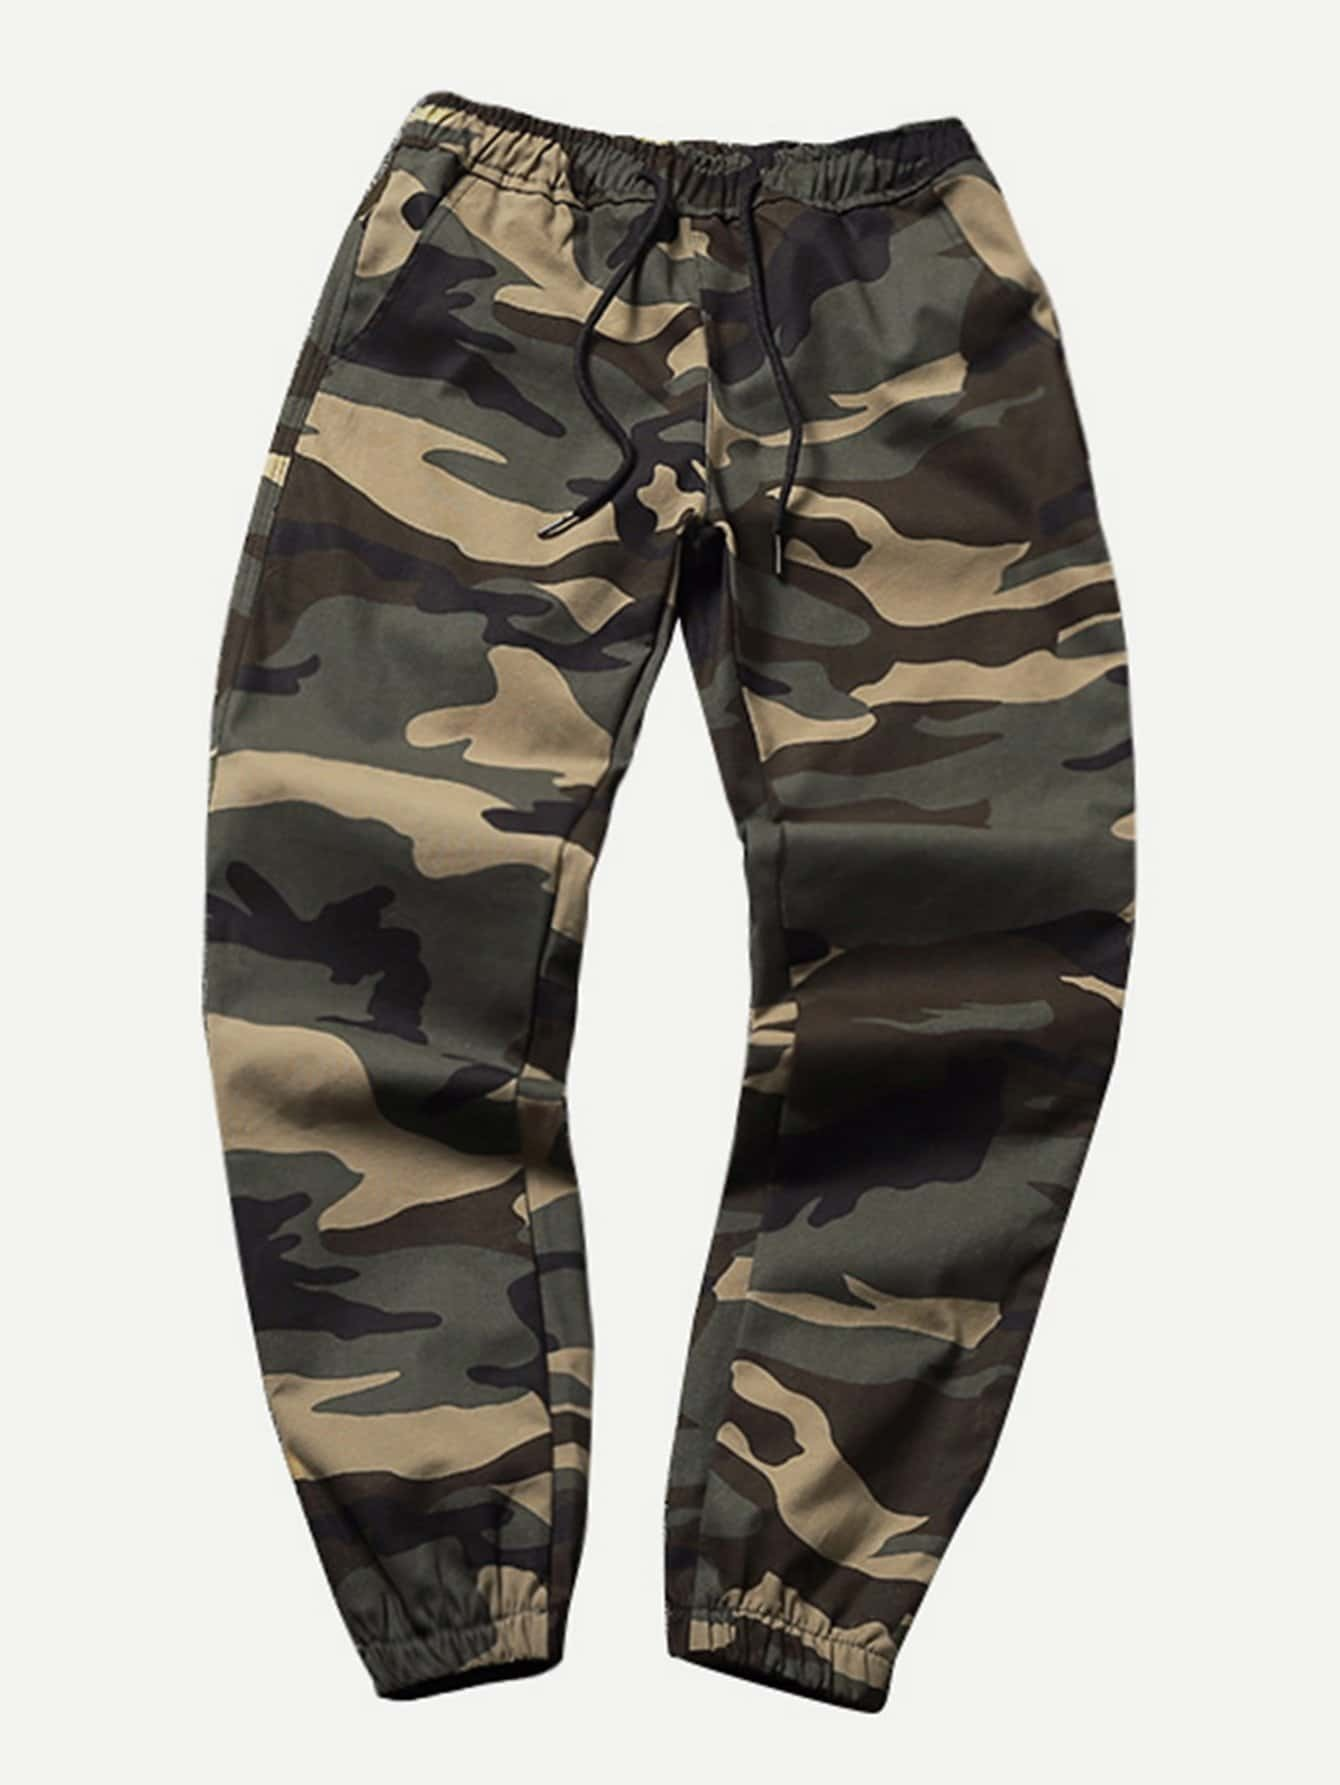 Men Drawstring Camo Pants idopy men s street style denim pants camouflage camo joggers stretchy drawstring biker cargo pants for hipster